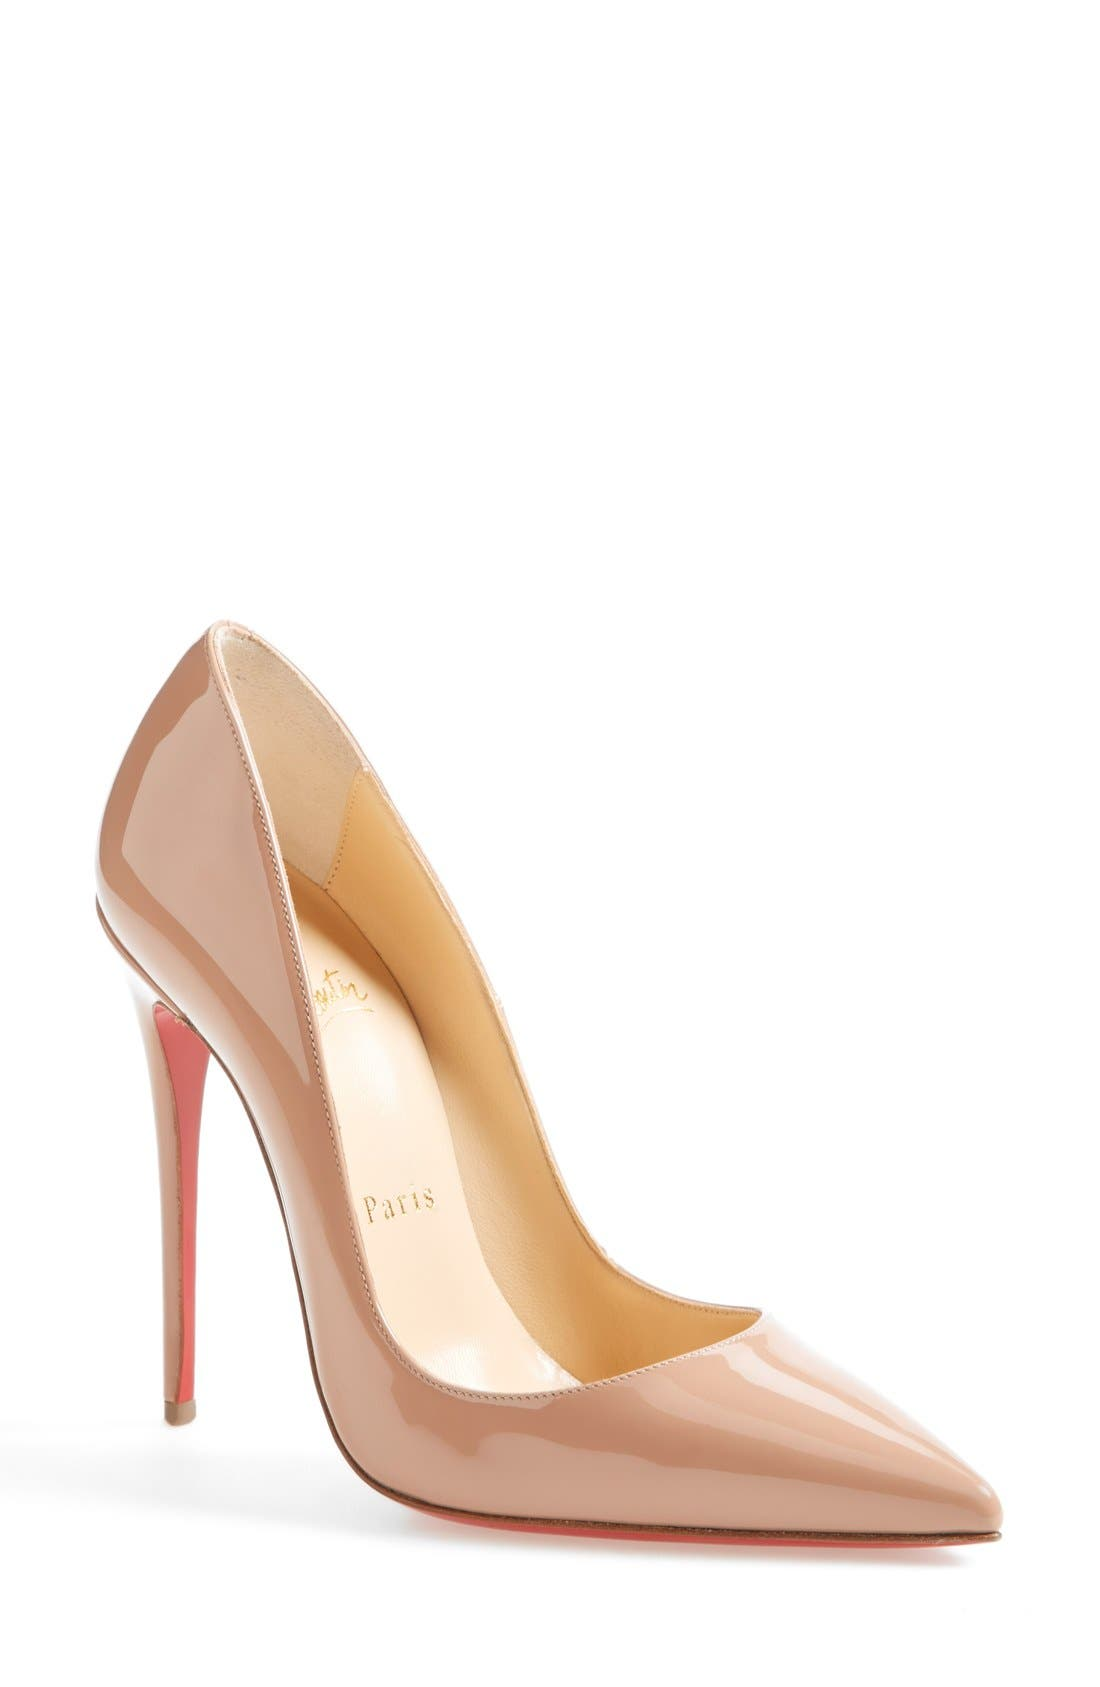 Christian Louboutin Women's So Kate Genuine Calf Hair Pump